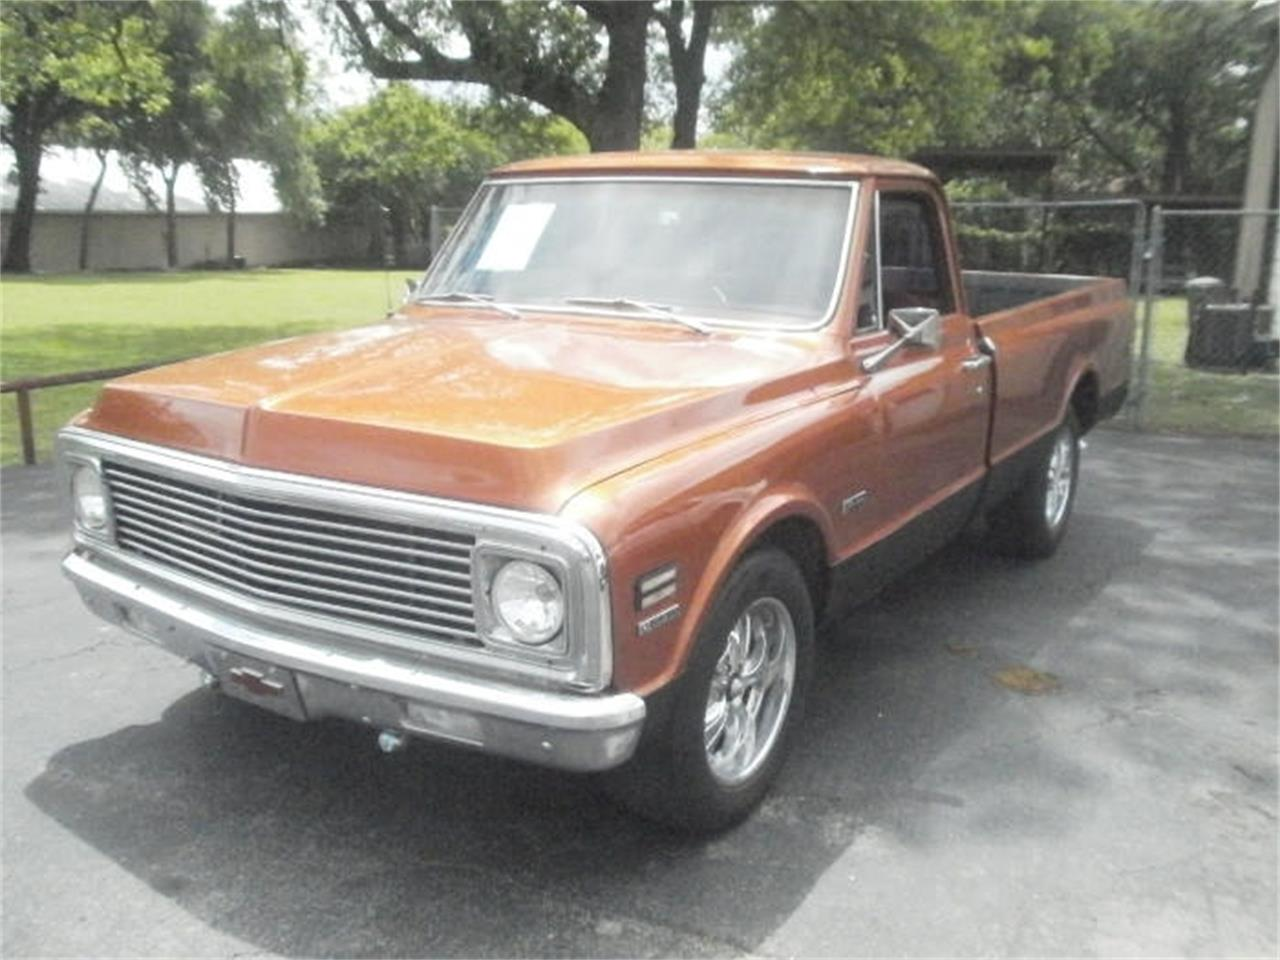 1971 Chevrolet Cheyenne for sale in Cleburne, TX – photo 4